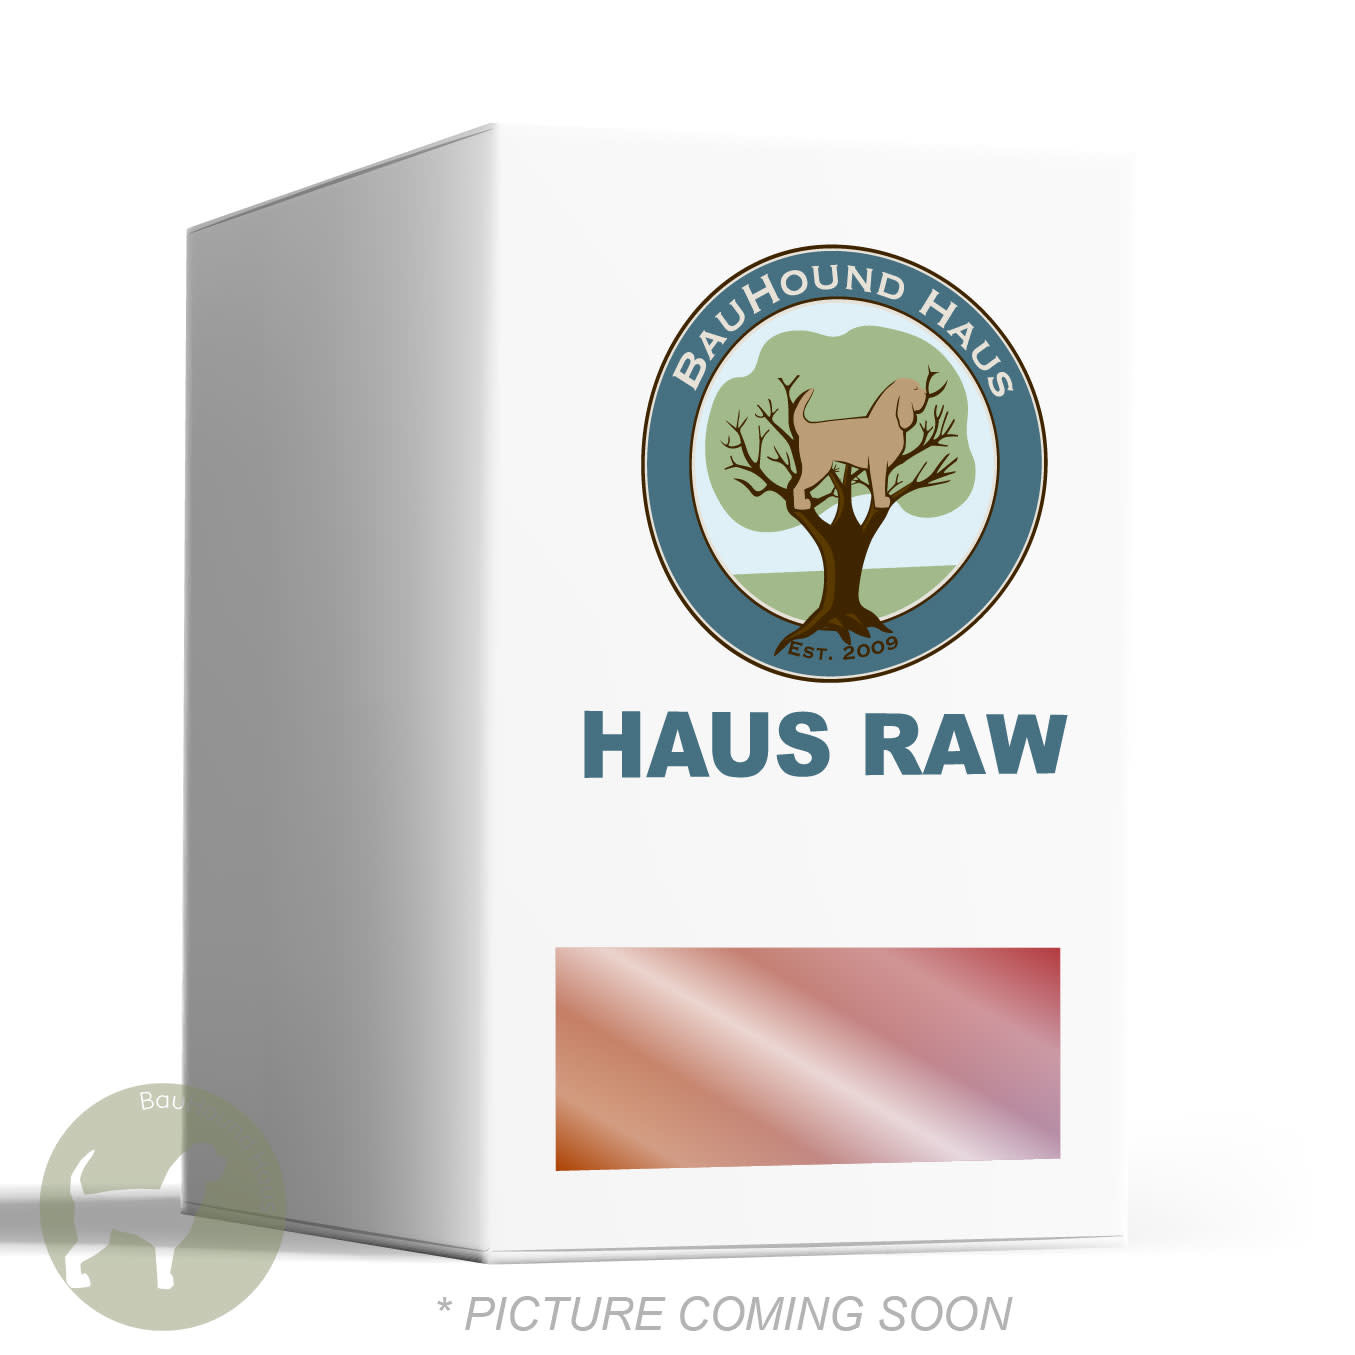 BauHound Haus BauHound Haus RAW Chicken Dog Food, 4lb